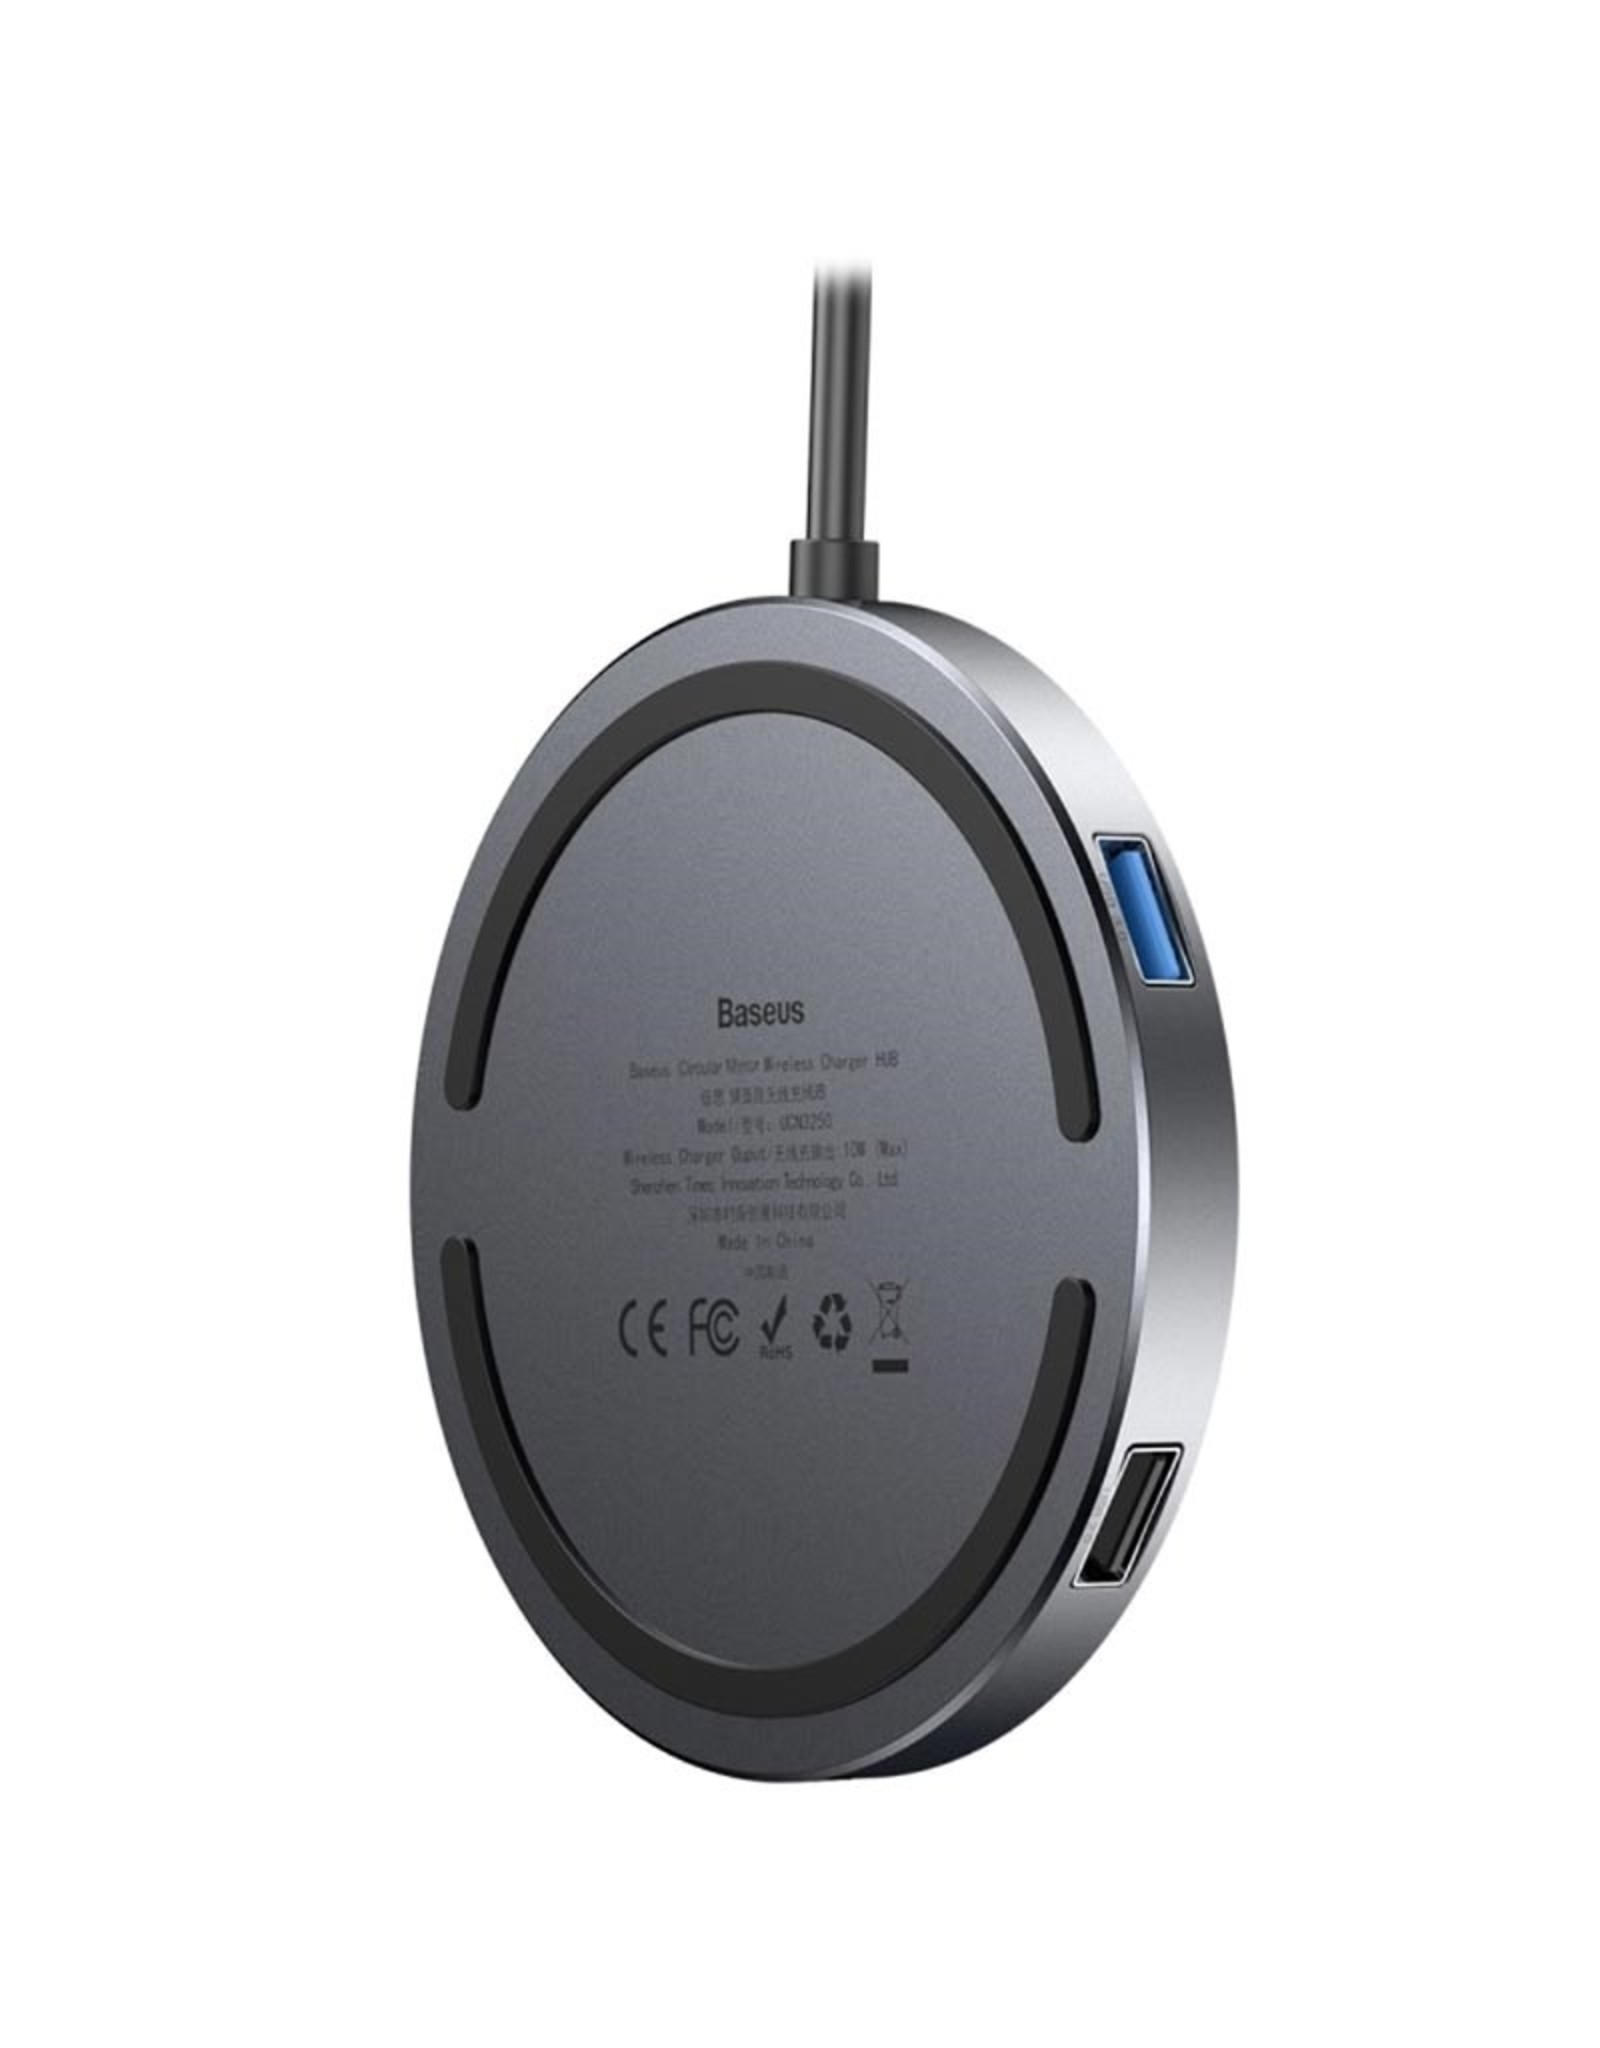 Baseus Baseus Circular Mirror Wireless Charger USB + HDMI Hub (Deep Grey)